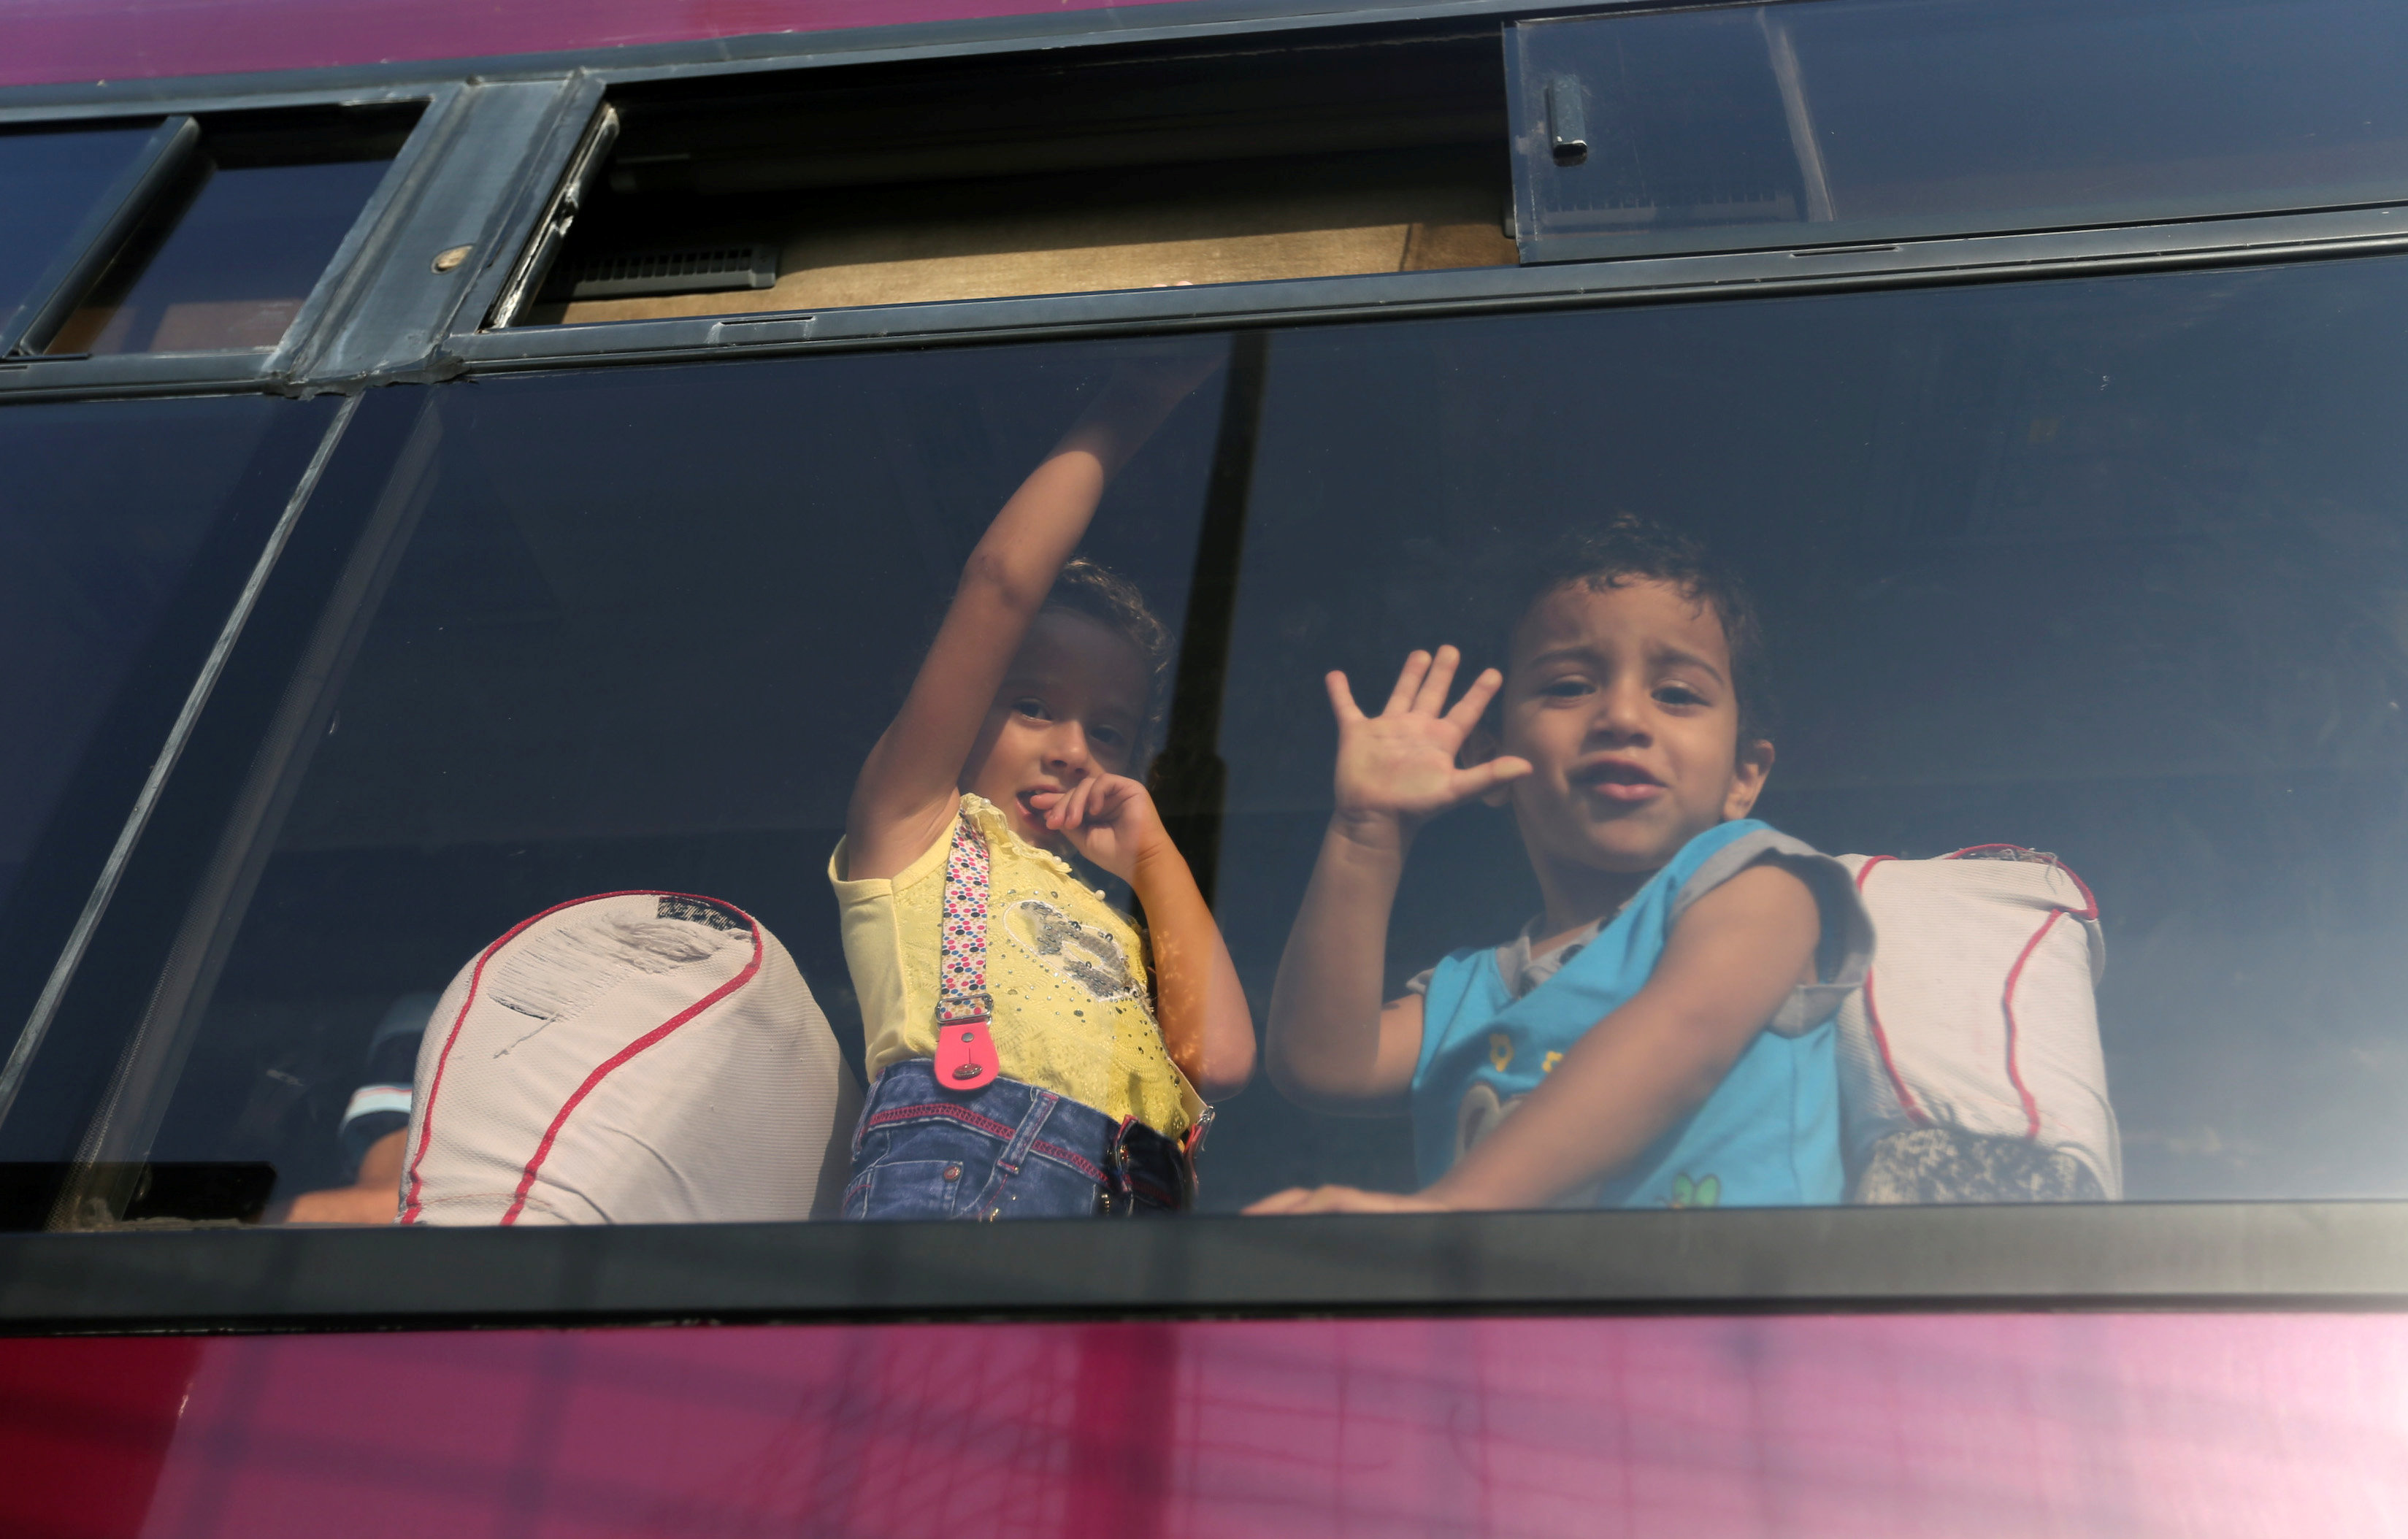 In pictures: Palestinians wait to enter Egypt from Gaza Strip at Rafah border crossing